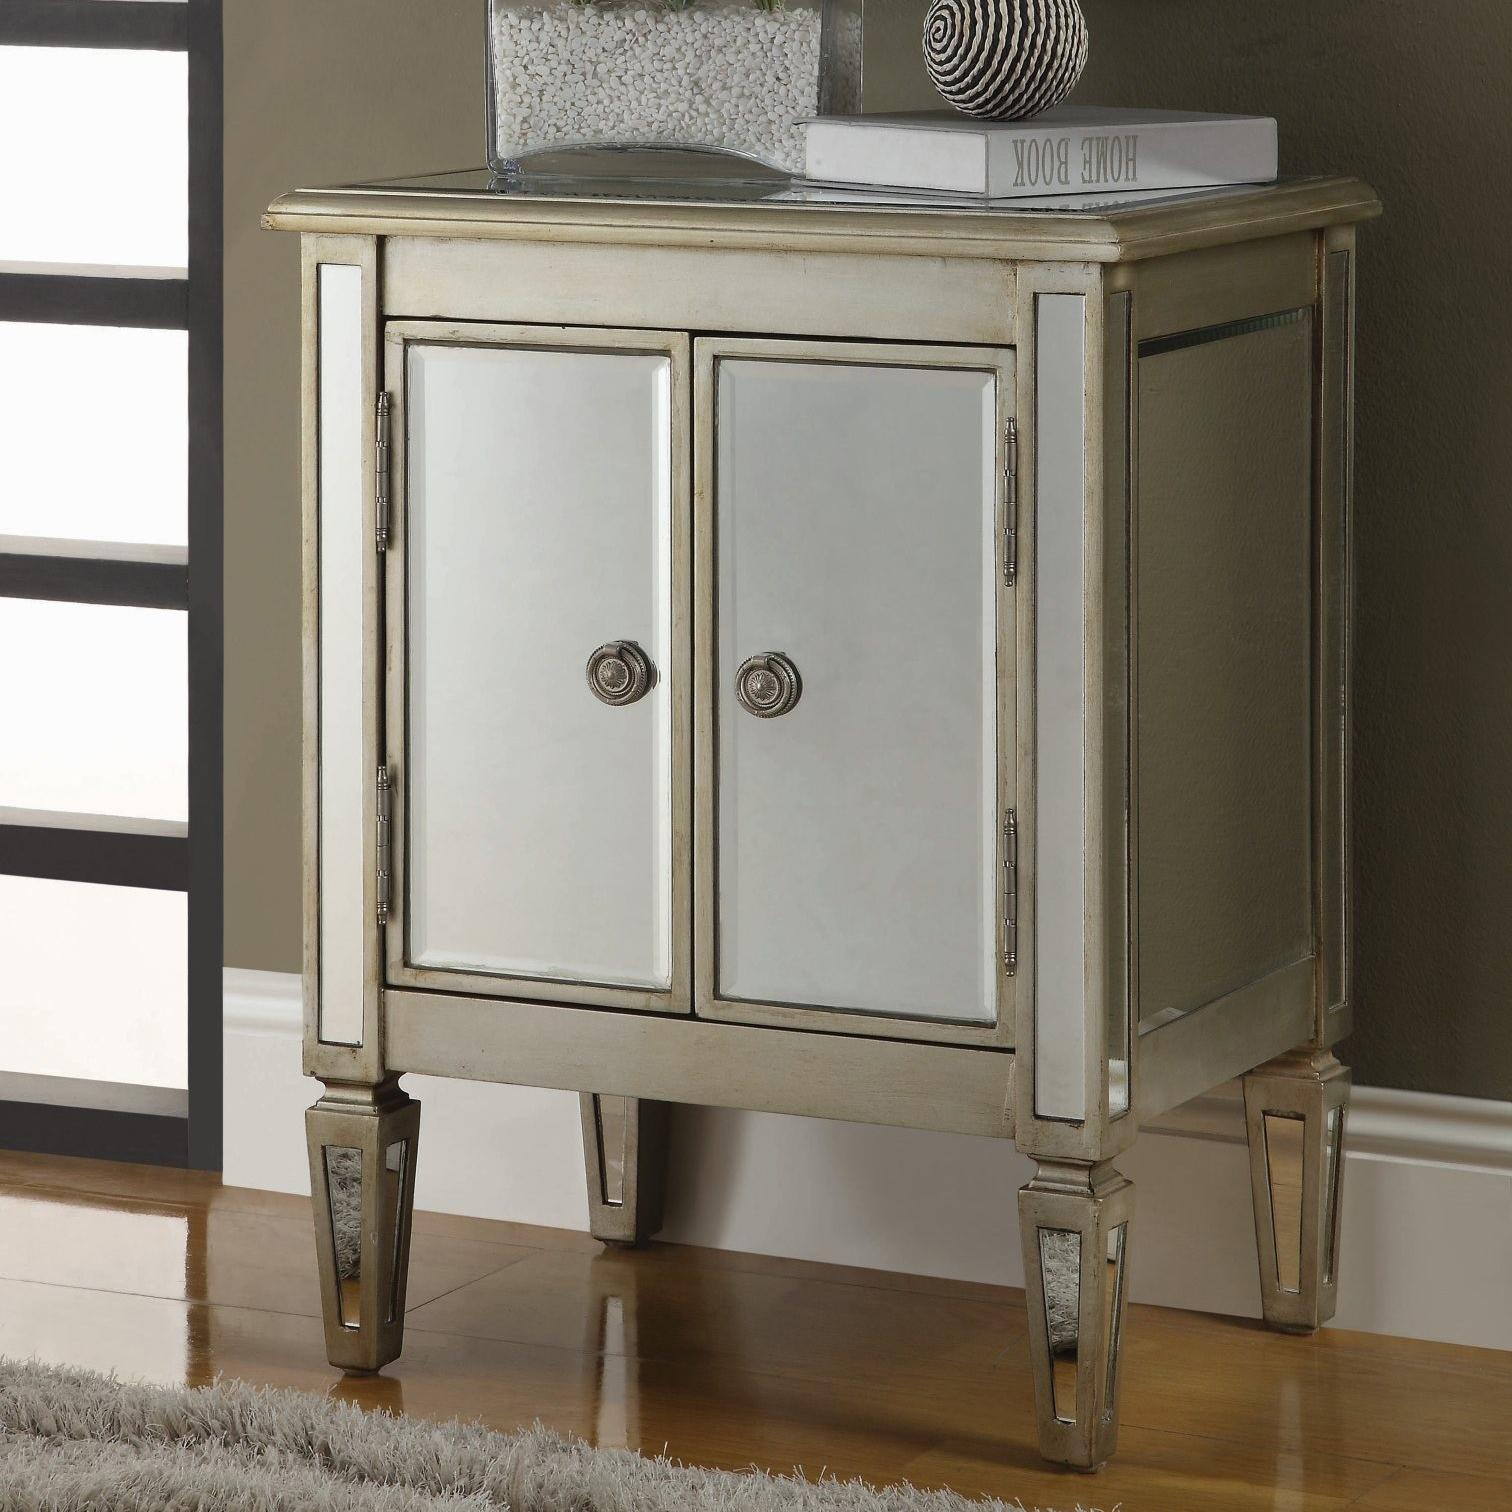 Accent Cabinets 2 Door Cabinet with Reflective Mirror  : 950214 from www.mybeverlyhillsfurniture.com size 1512 x 1512 jpeg 213kB